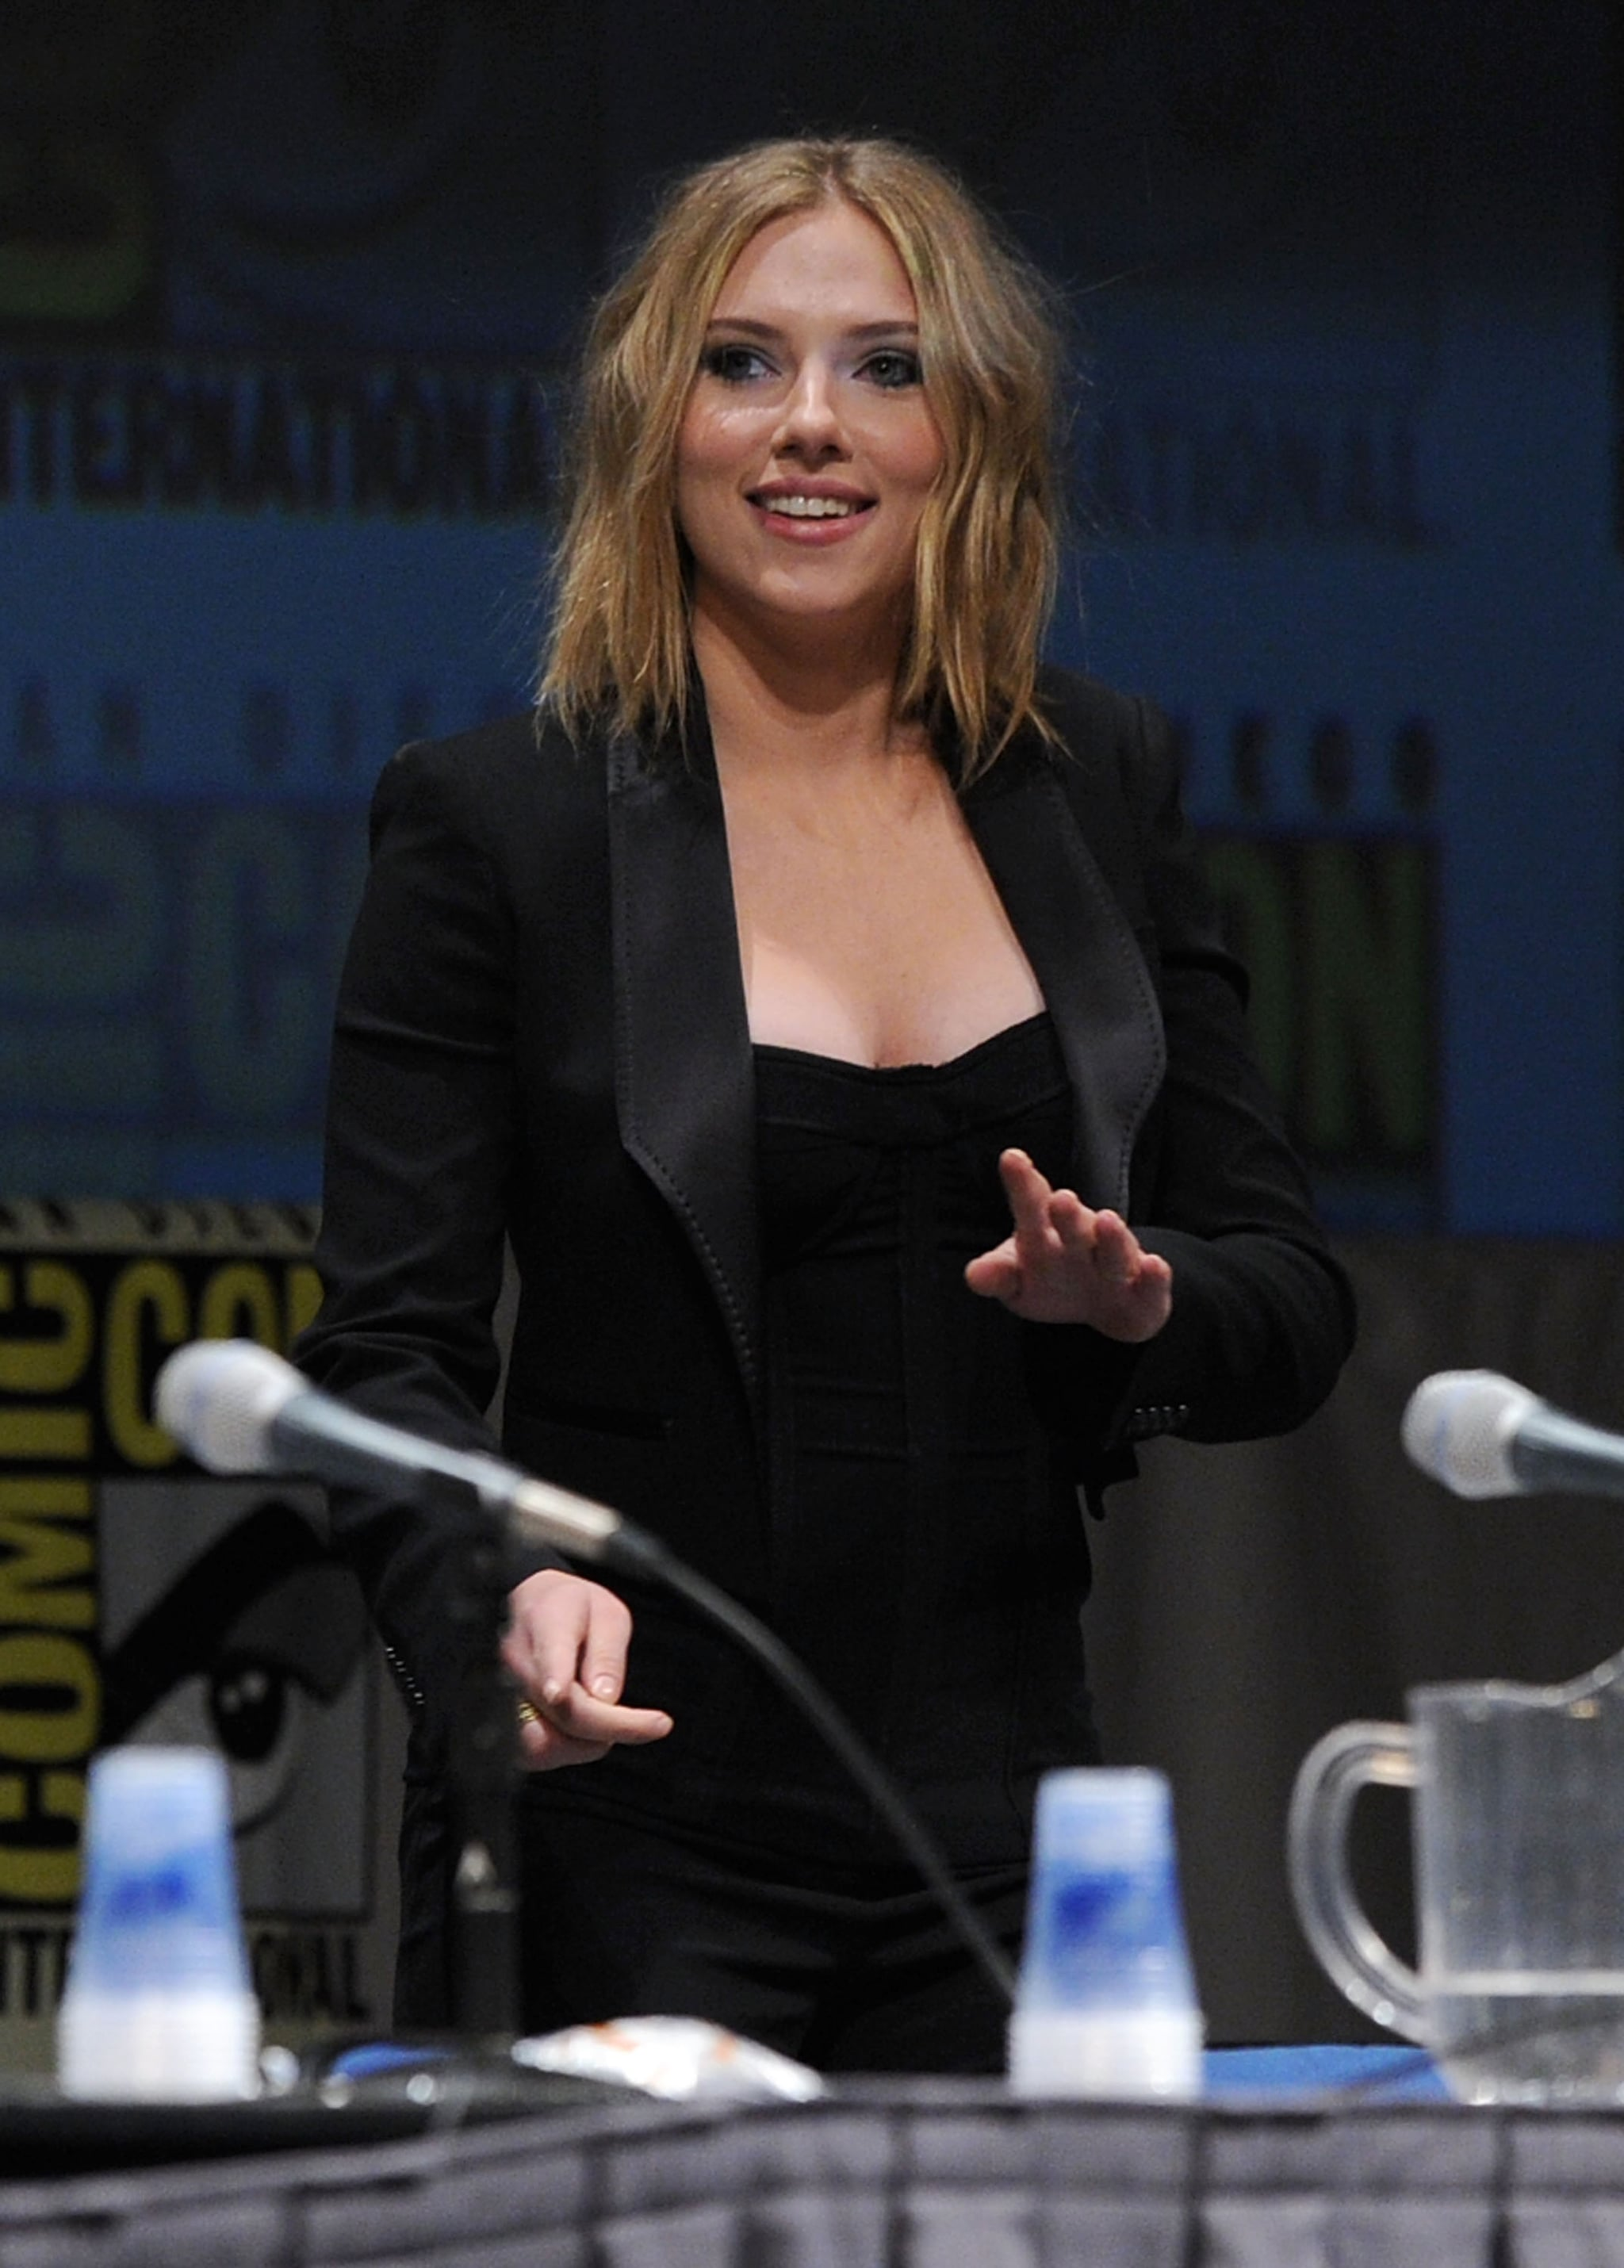 Pictures of Ali Larter, Scarlett Johansson, Anna Paquin, Stephen Moyer, and More at Comic-Con ...